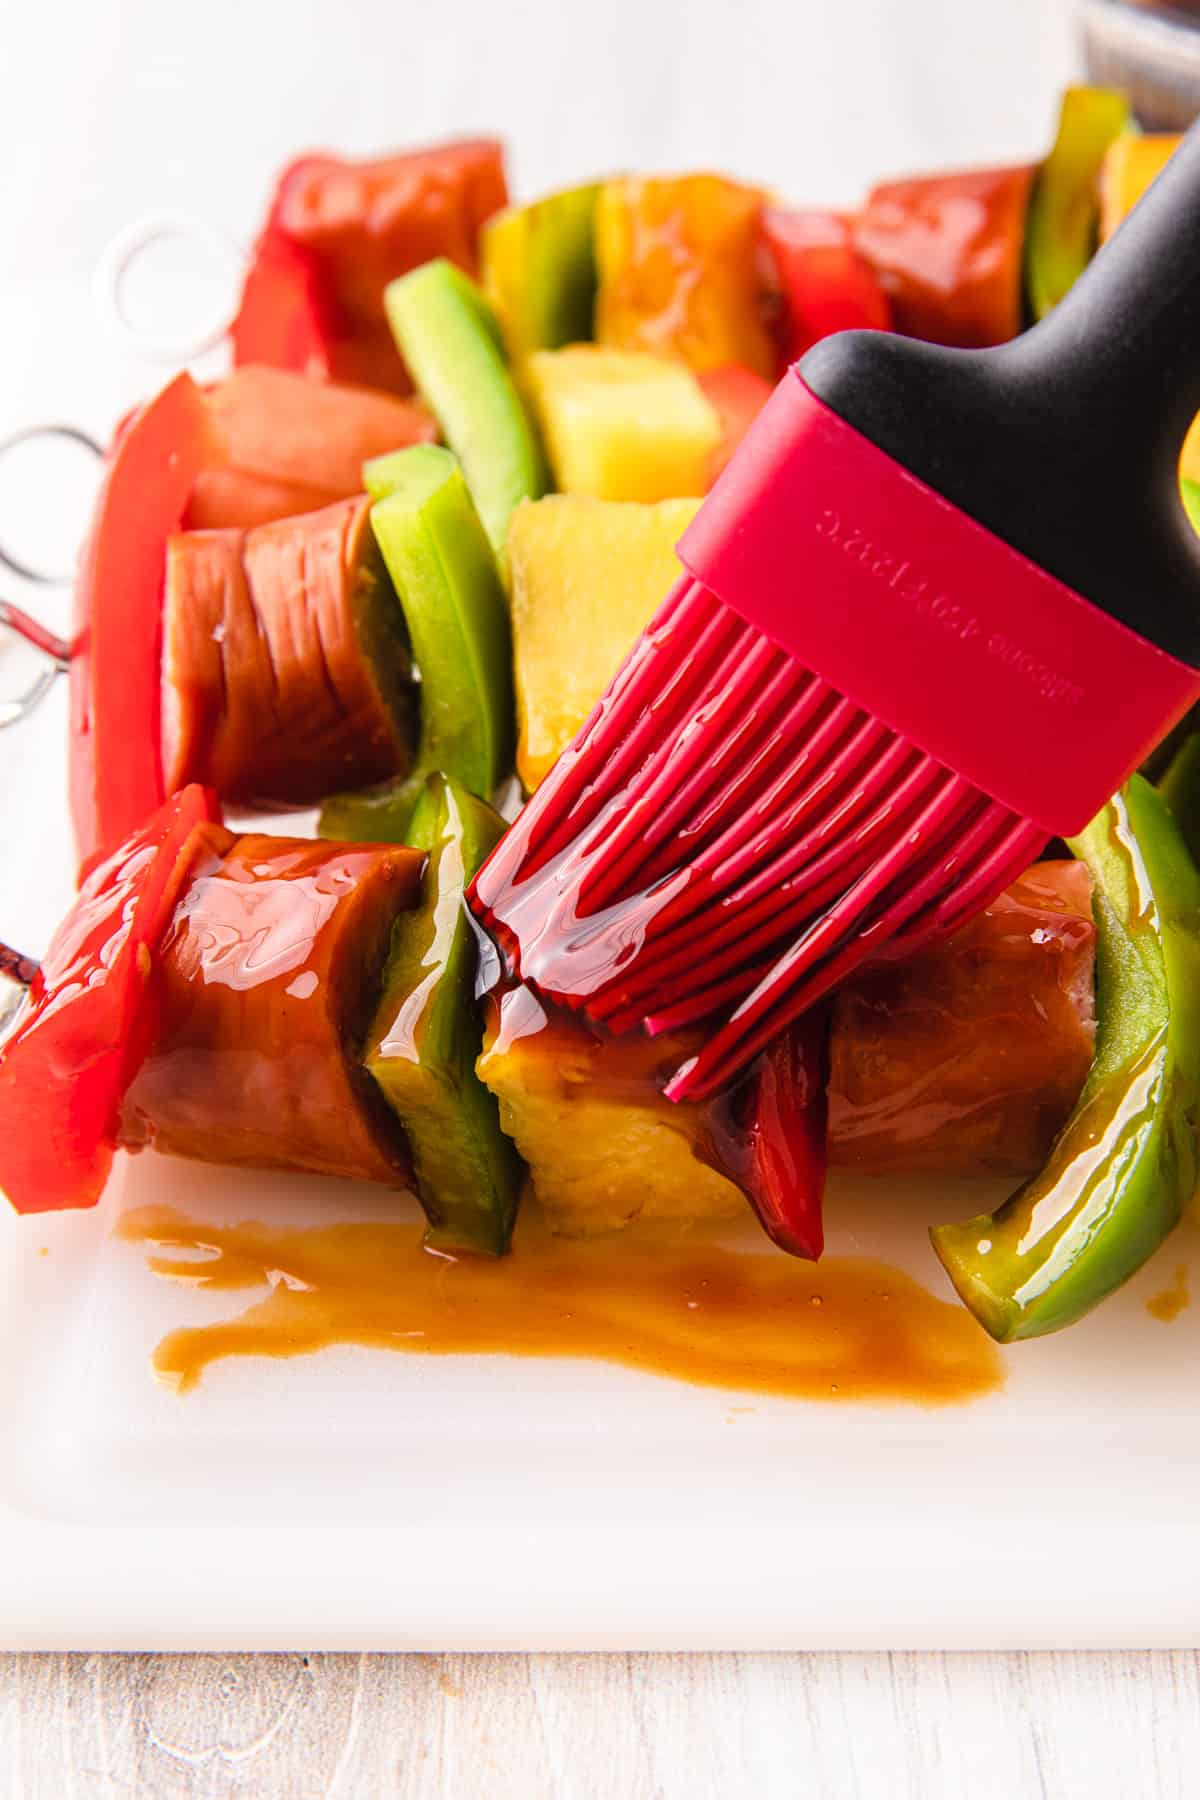 sausage and vegetables threaded on a wooden skewer while brushed with teriyaki sauce